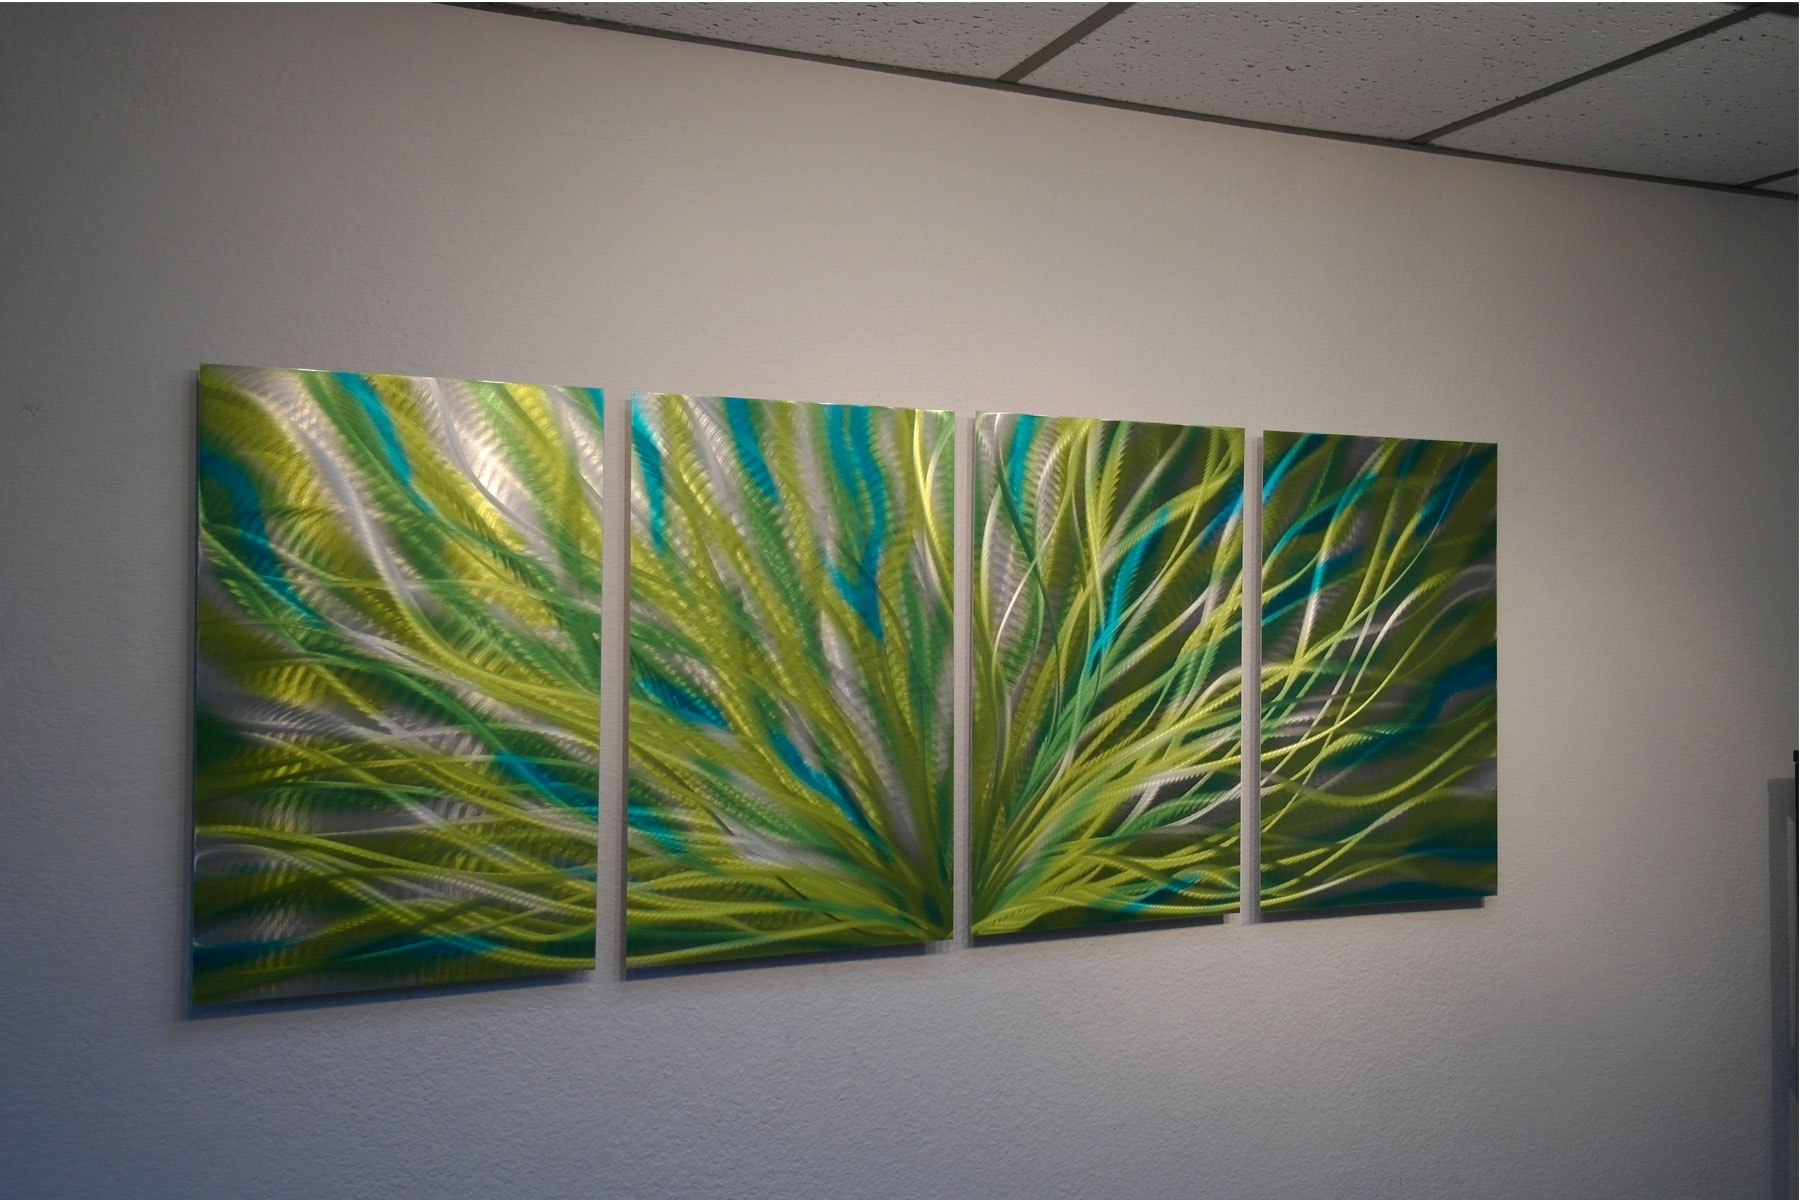 Radiance Cyan Chartreuse – Abstract Metal Wall Art Contemporary Inside Most Recently Released Green Wall Art (View 14 of 15)